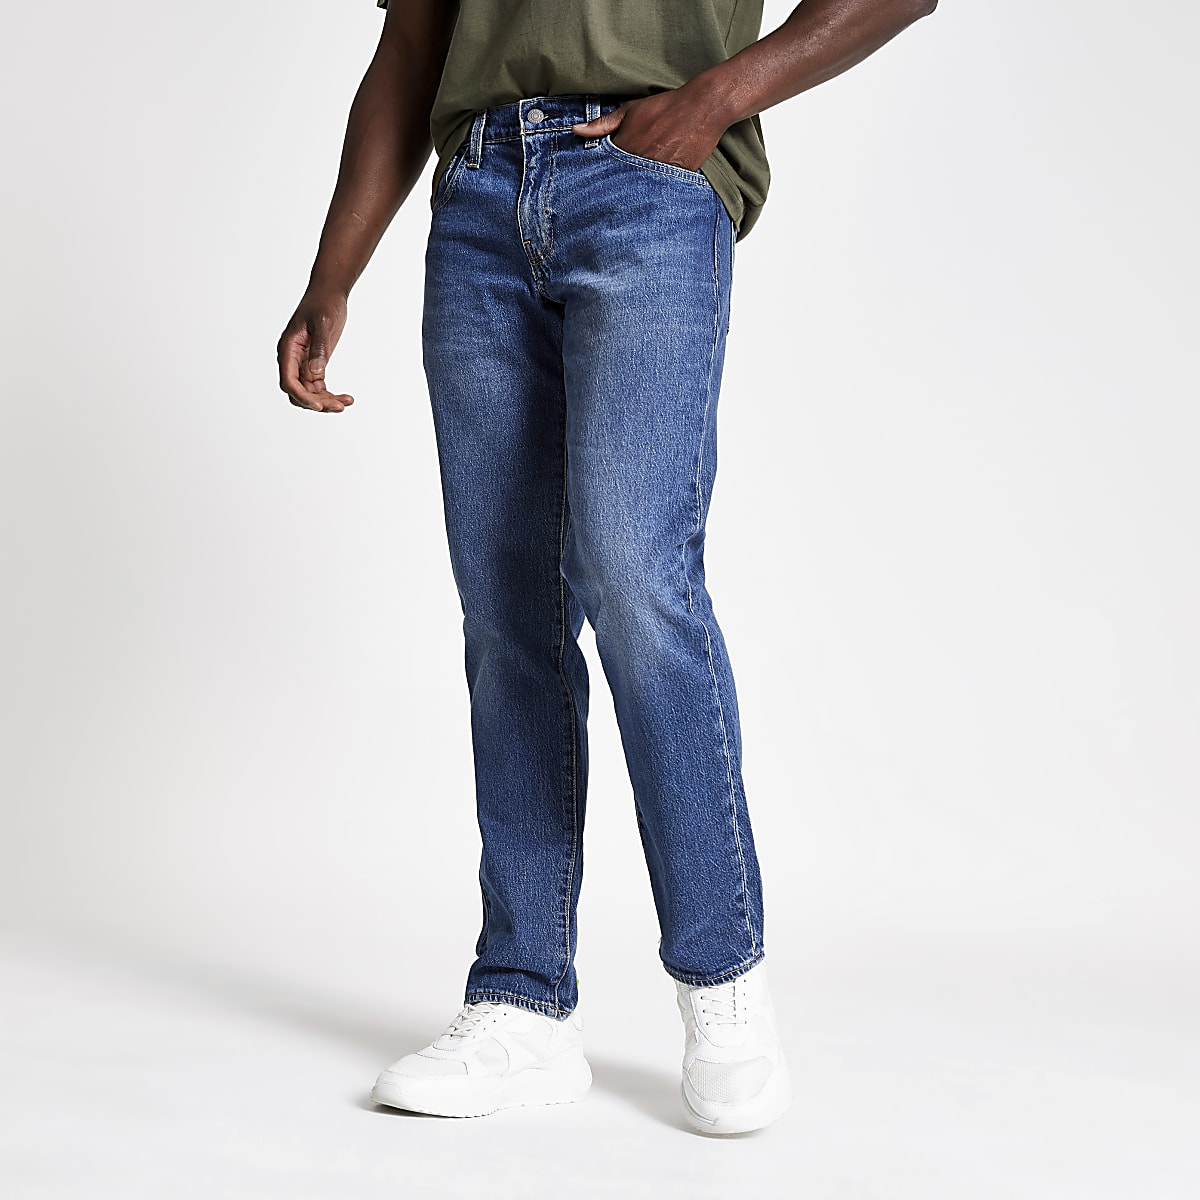 Levi's blue 511 slim fit jeans